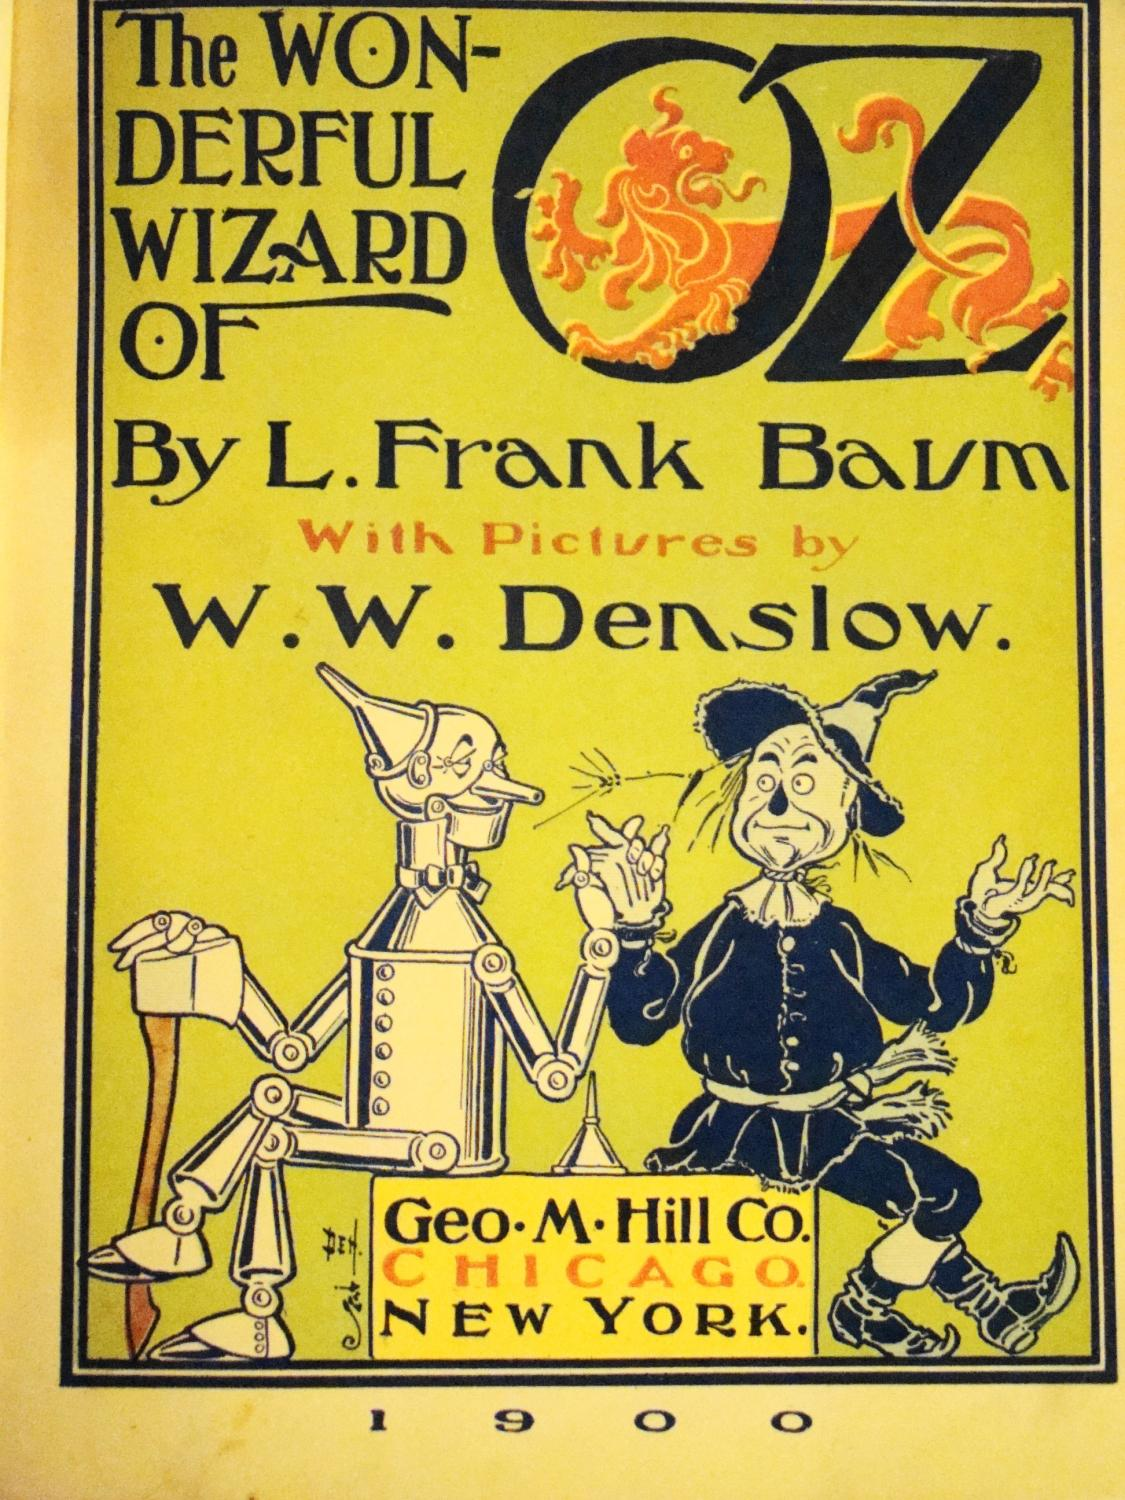 L frank baum the wonderful wizard of oz first edition seller.